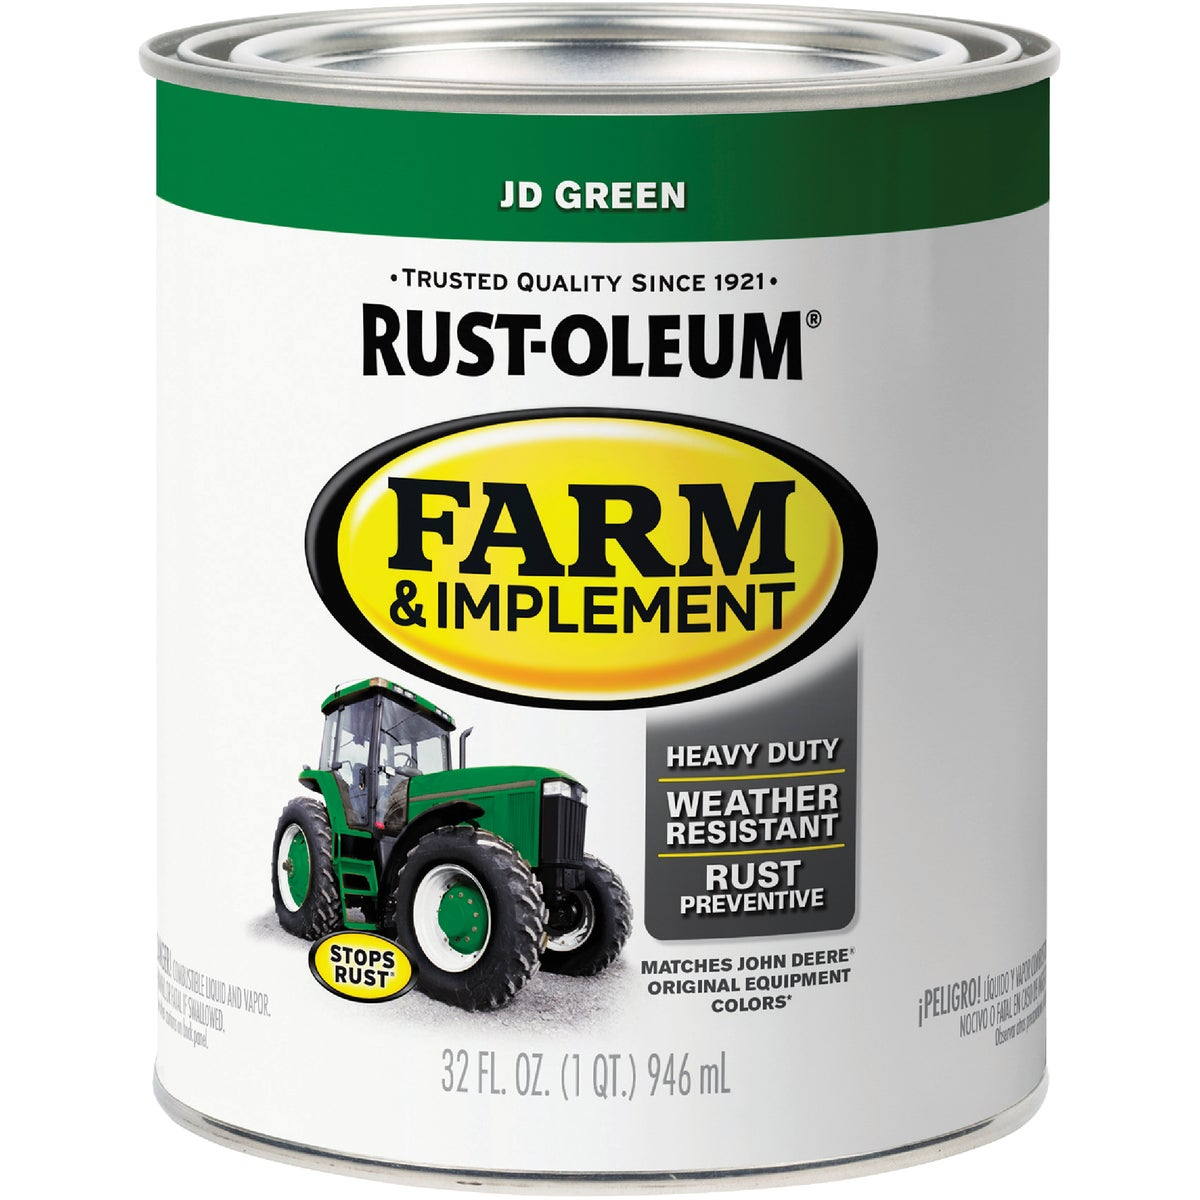 JD GREEN IMPLEMNT ENAMEL - 7435-502 by Rustoleum